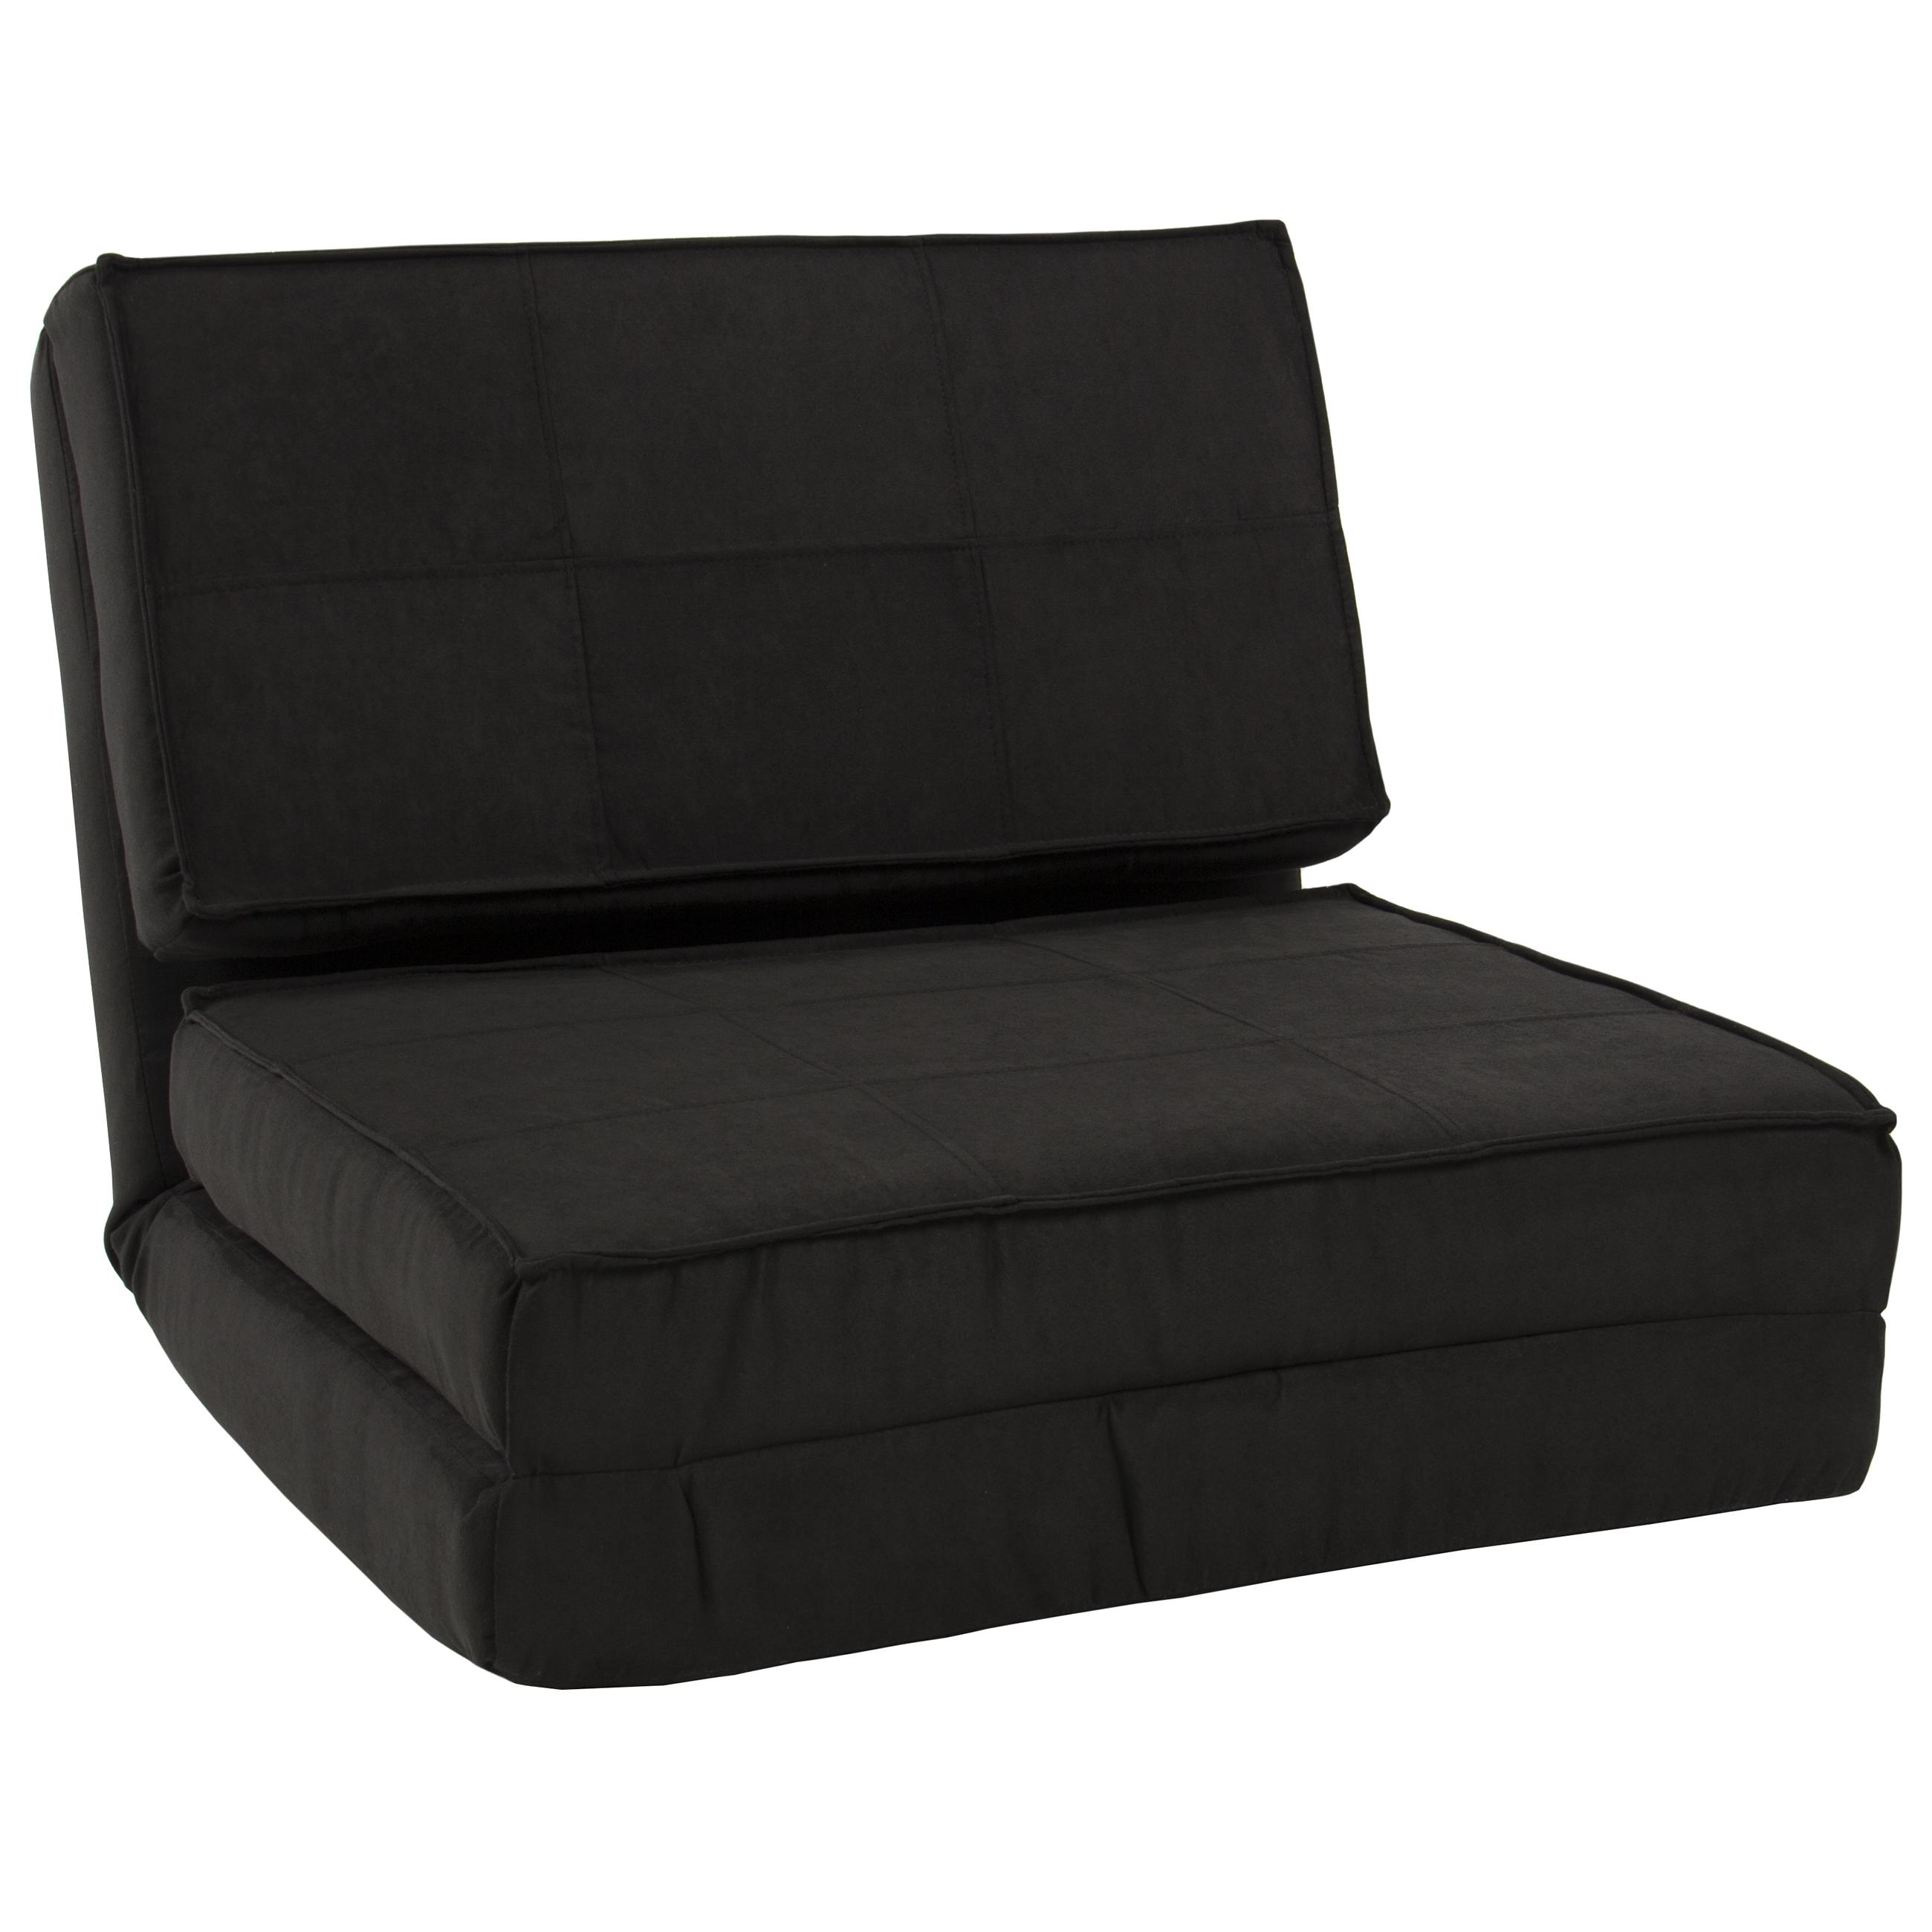 Best Choice Products Convertible Sleeper Chair Bed (Black Within Collapsible Sofas (Image 4 of 20)